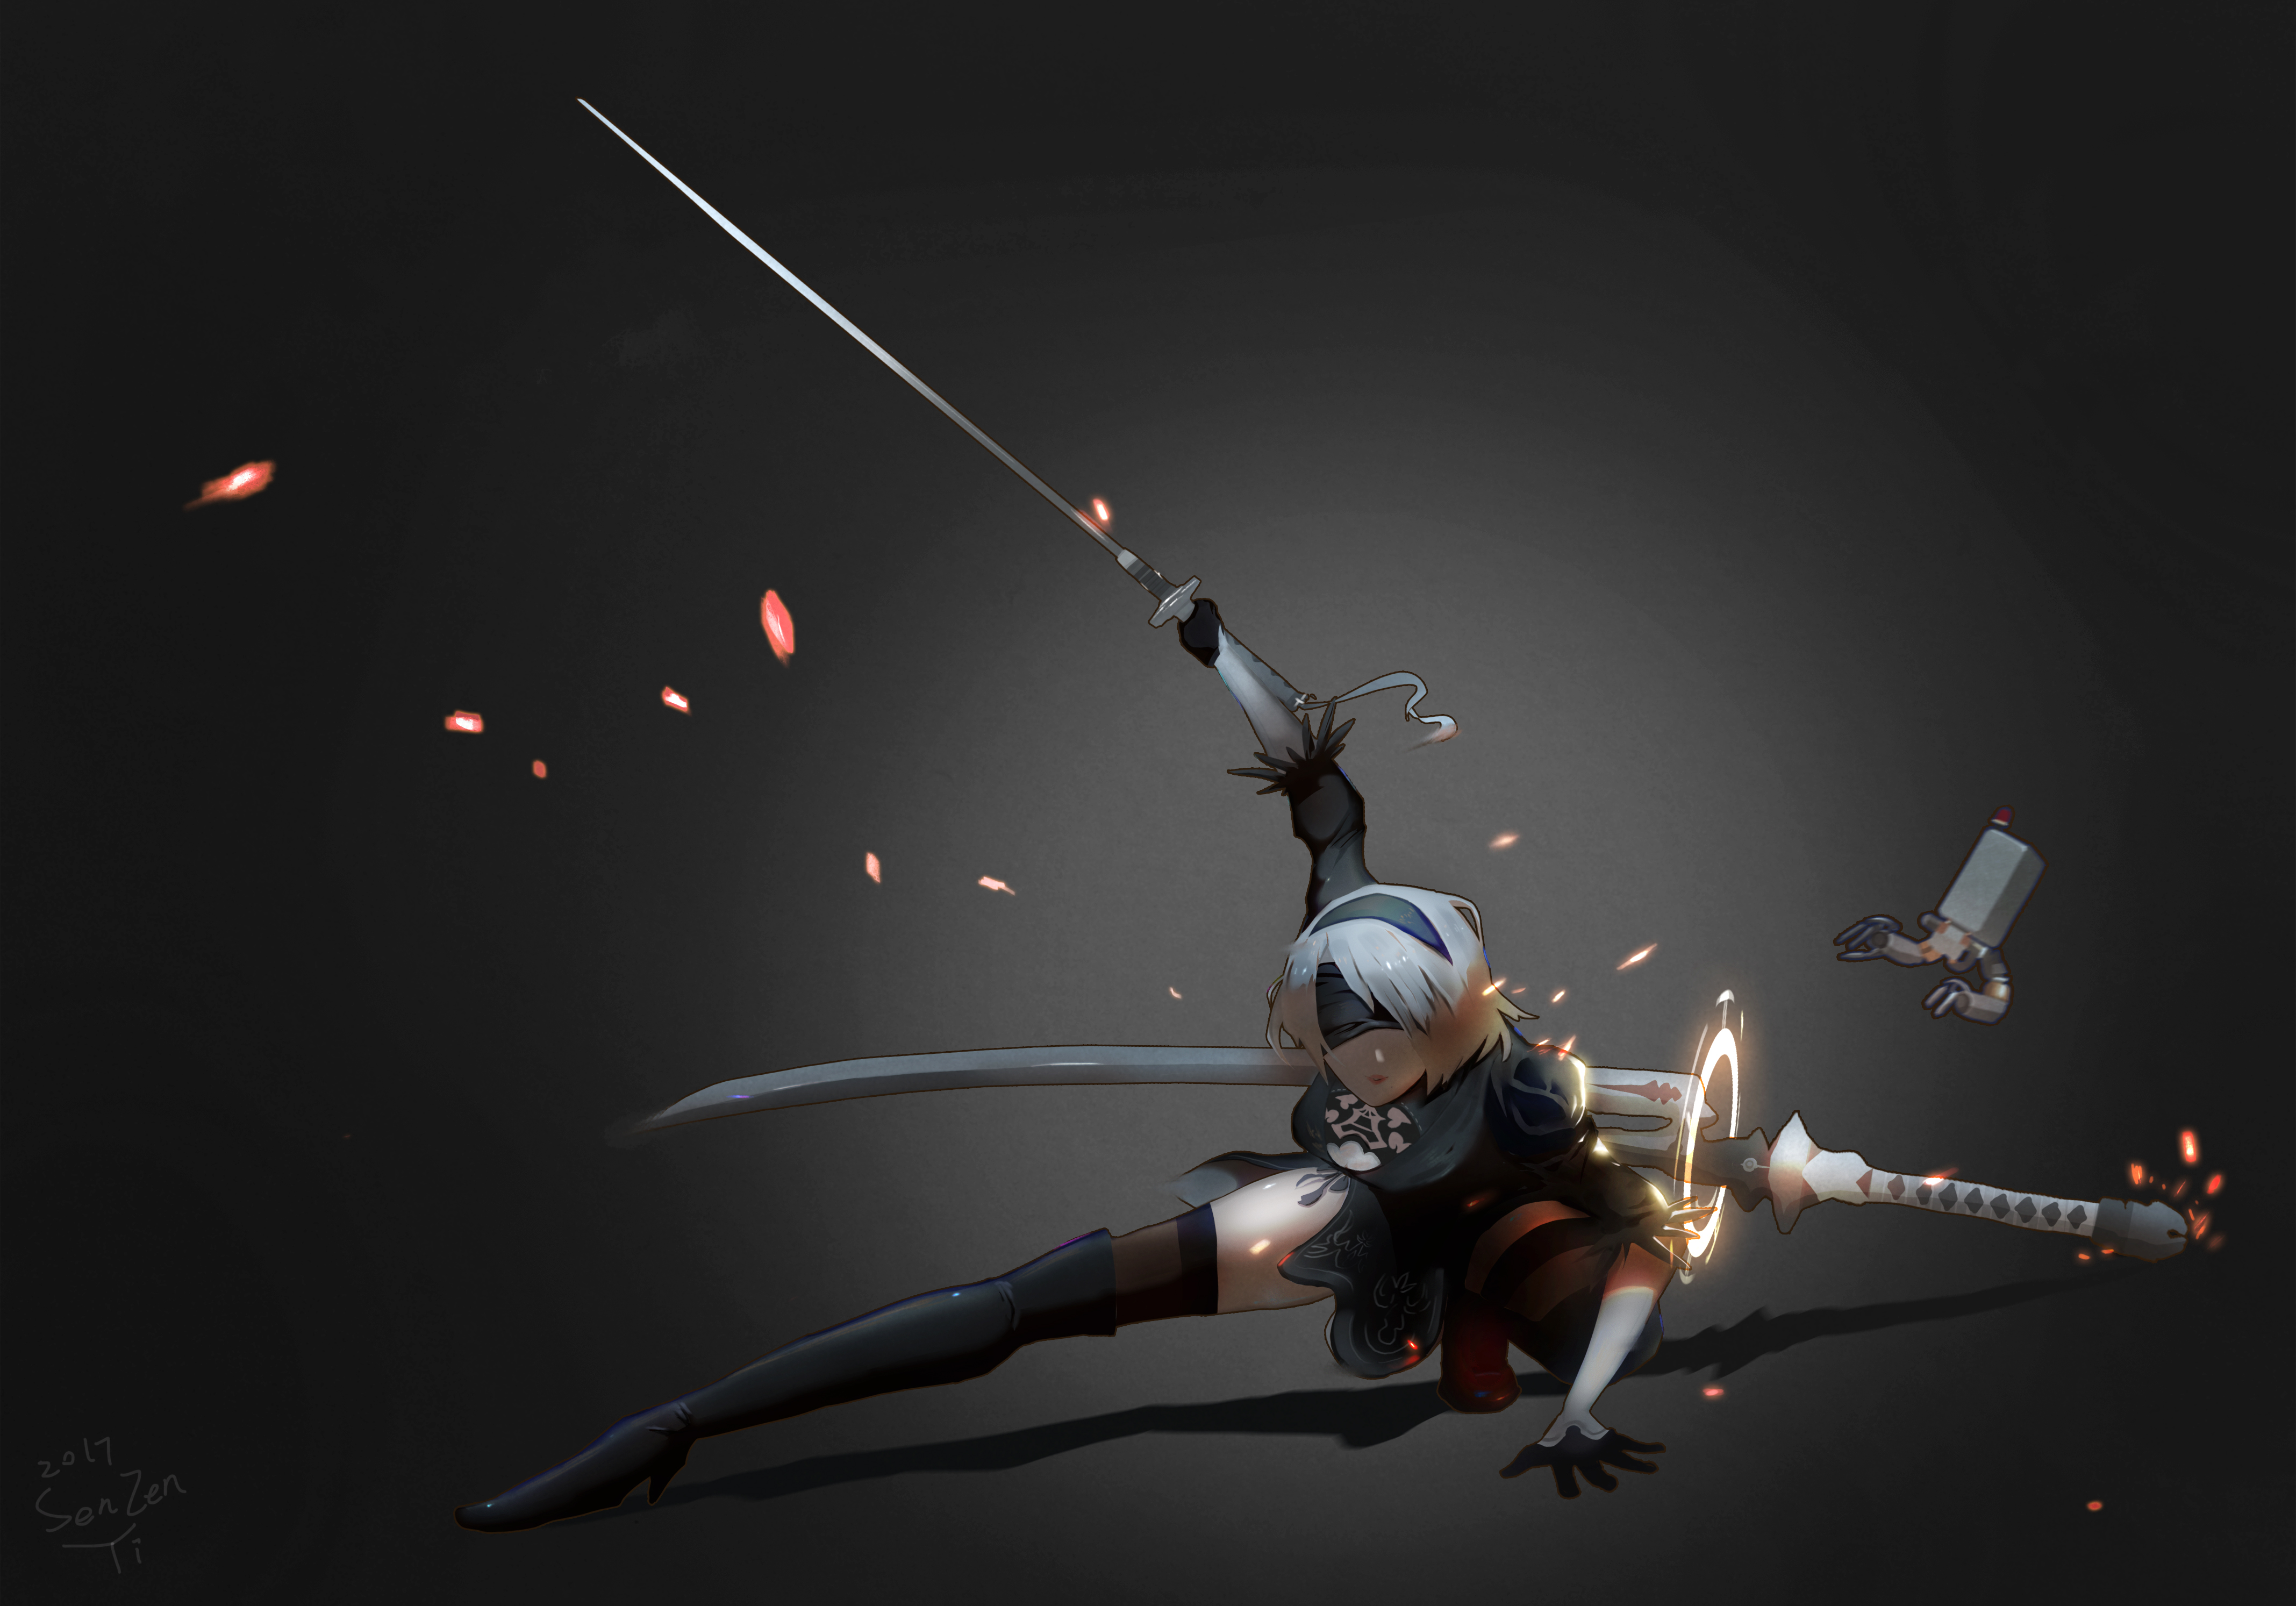 2b nier automata katana 5k hd anime 4k wallpapers - 5k anime wallpaper ...